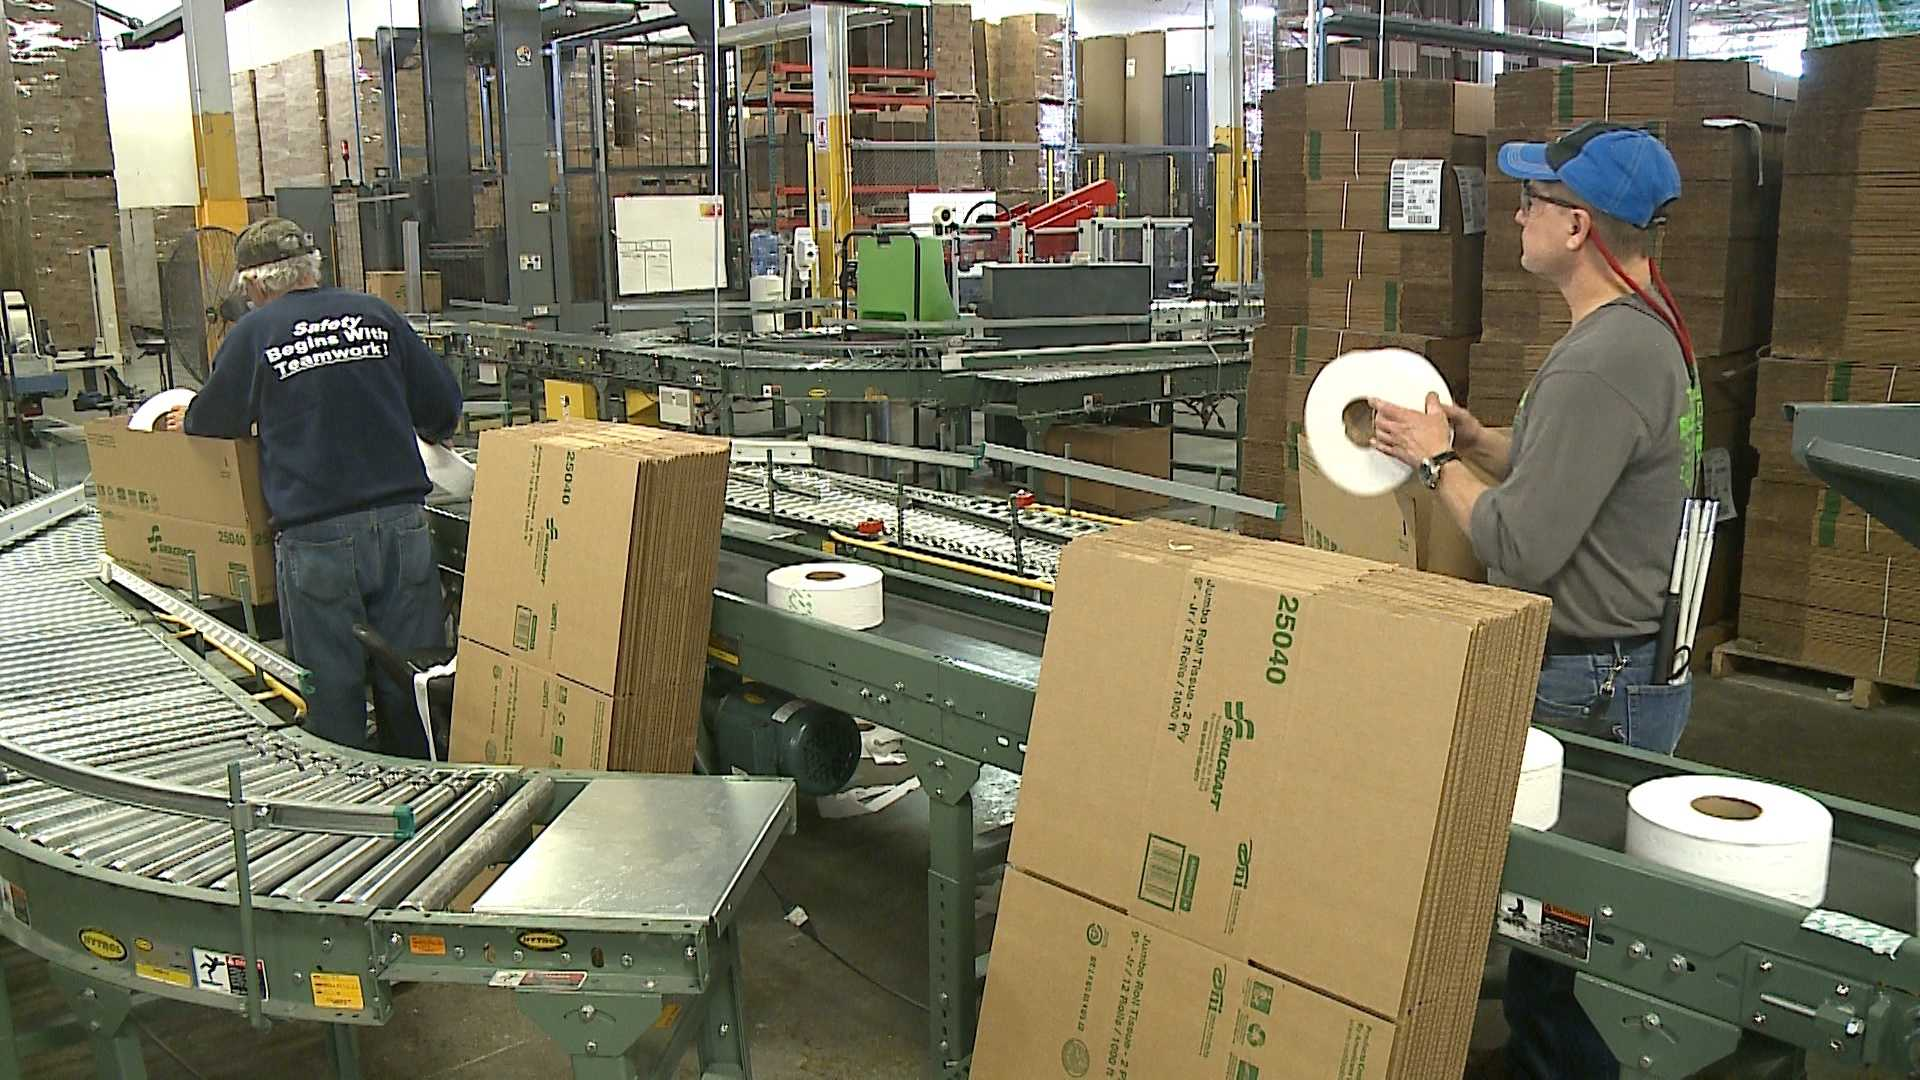 Blind and visually impaired workers find hope at Outlook Nebraska, where they work in a factory designed for people who can't see.